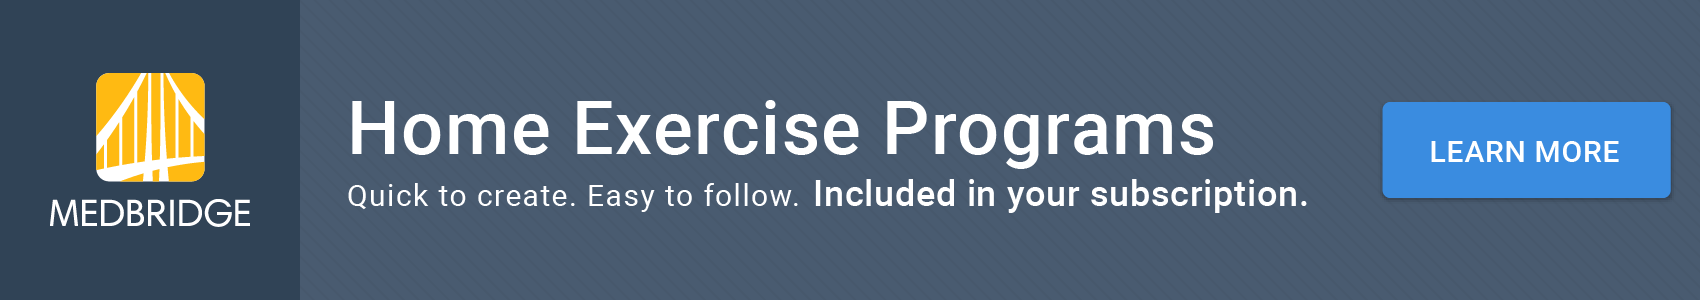 MedBridge Home Exercise Program Solution